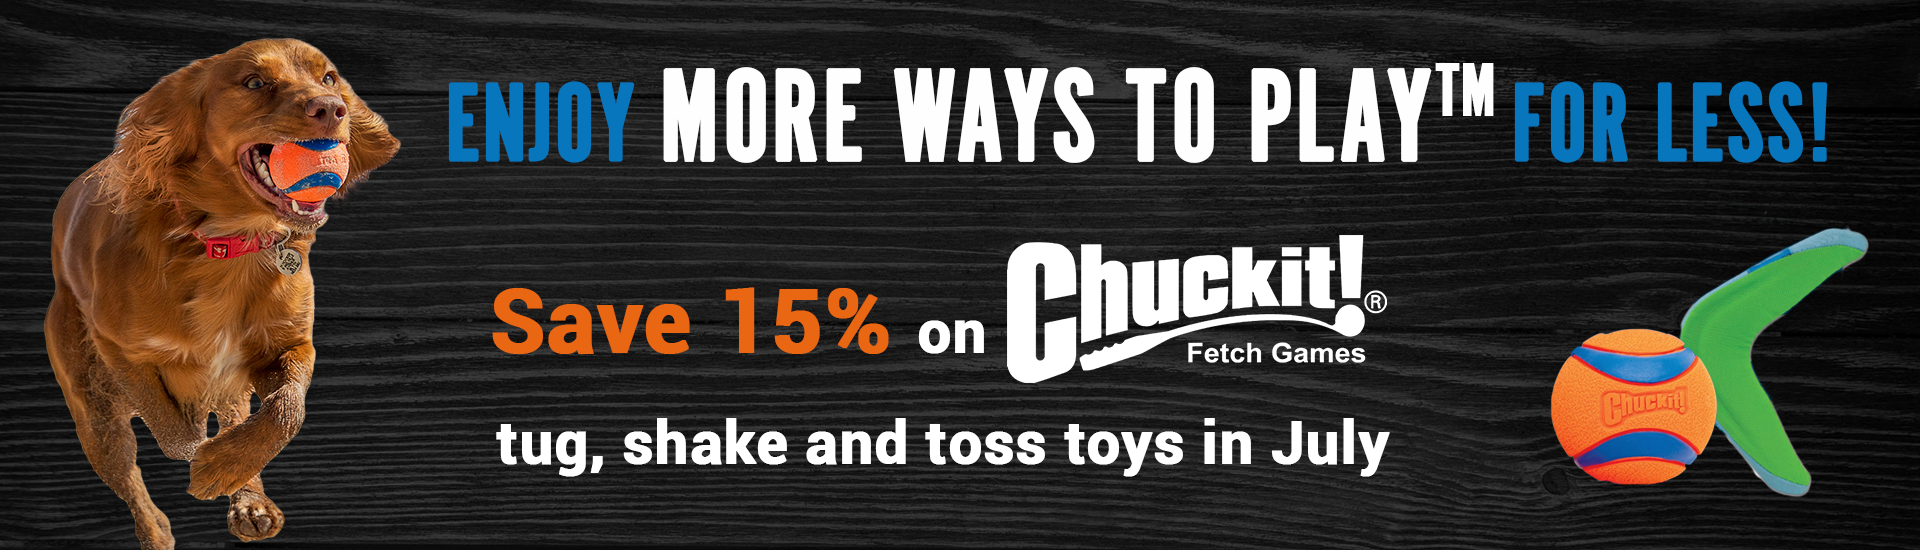 Enjoy MORE WAYS TO PLAY™ for less! Save 15% on Chuckit! tug, shake and toss toys in July.